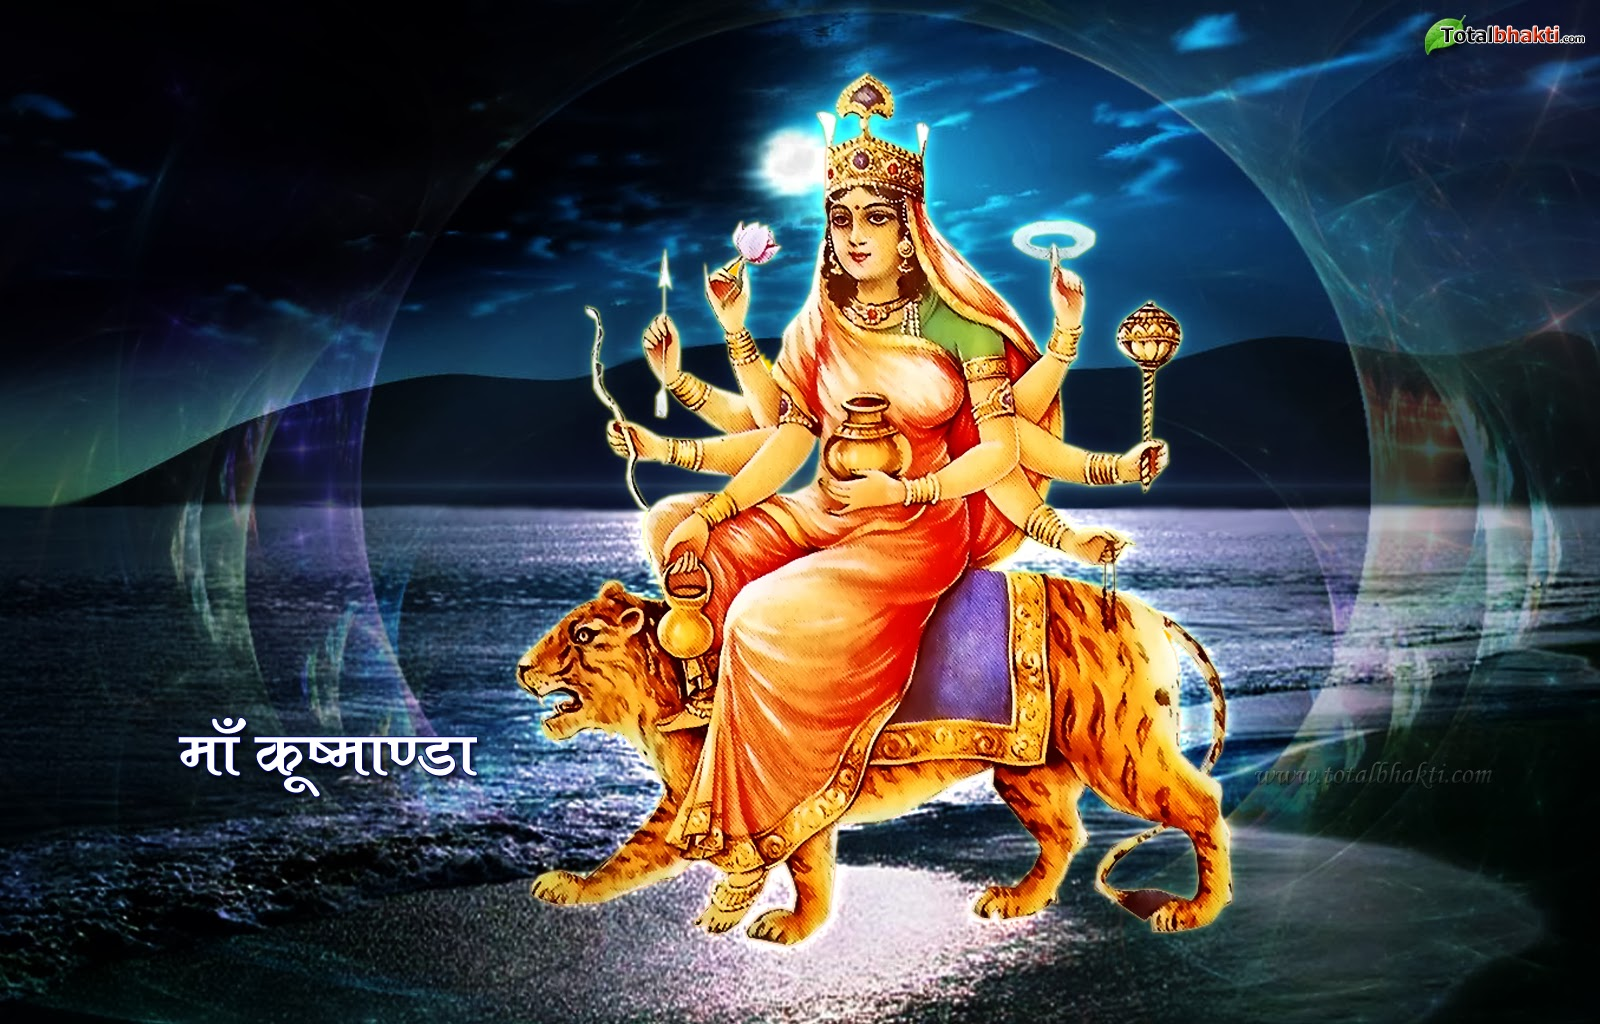 BHARAT DARSHAN - DEVI NAVRATRI - GOD AS MALE AND FEMALE . GODDESS OF FOURTH DAY OR CHATURTHI IS KNOWN AS KUSHMANDA.